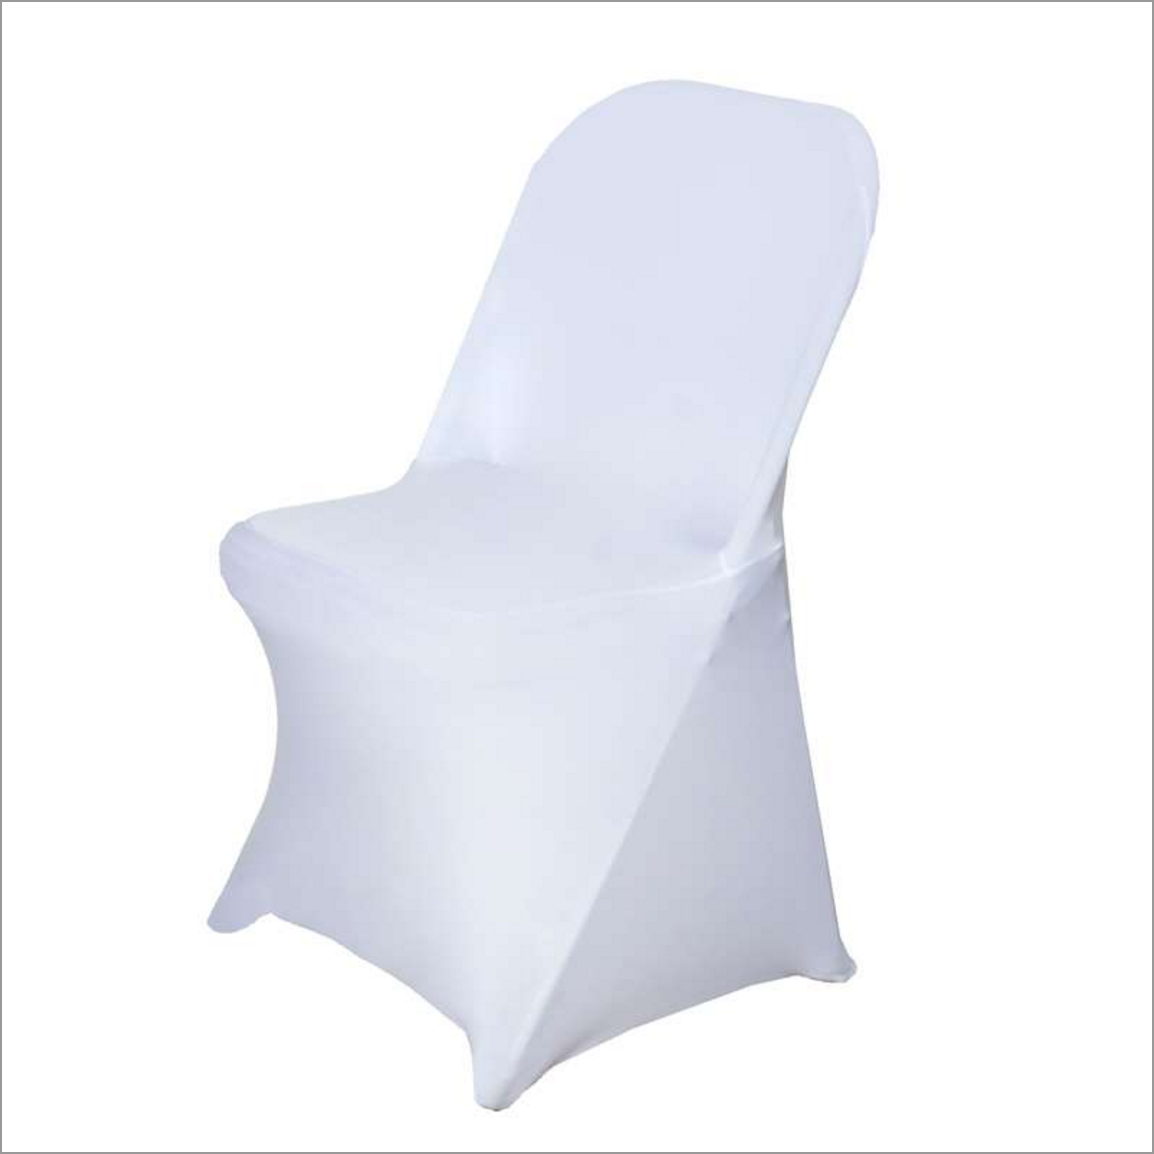 Closeout White Stretch Folding Chair Cover Chair Covers And Sashes Luna Bazaar Boho Vintage Style Decor